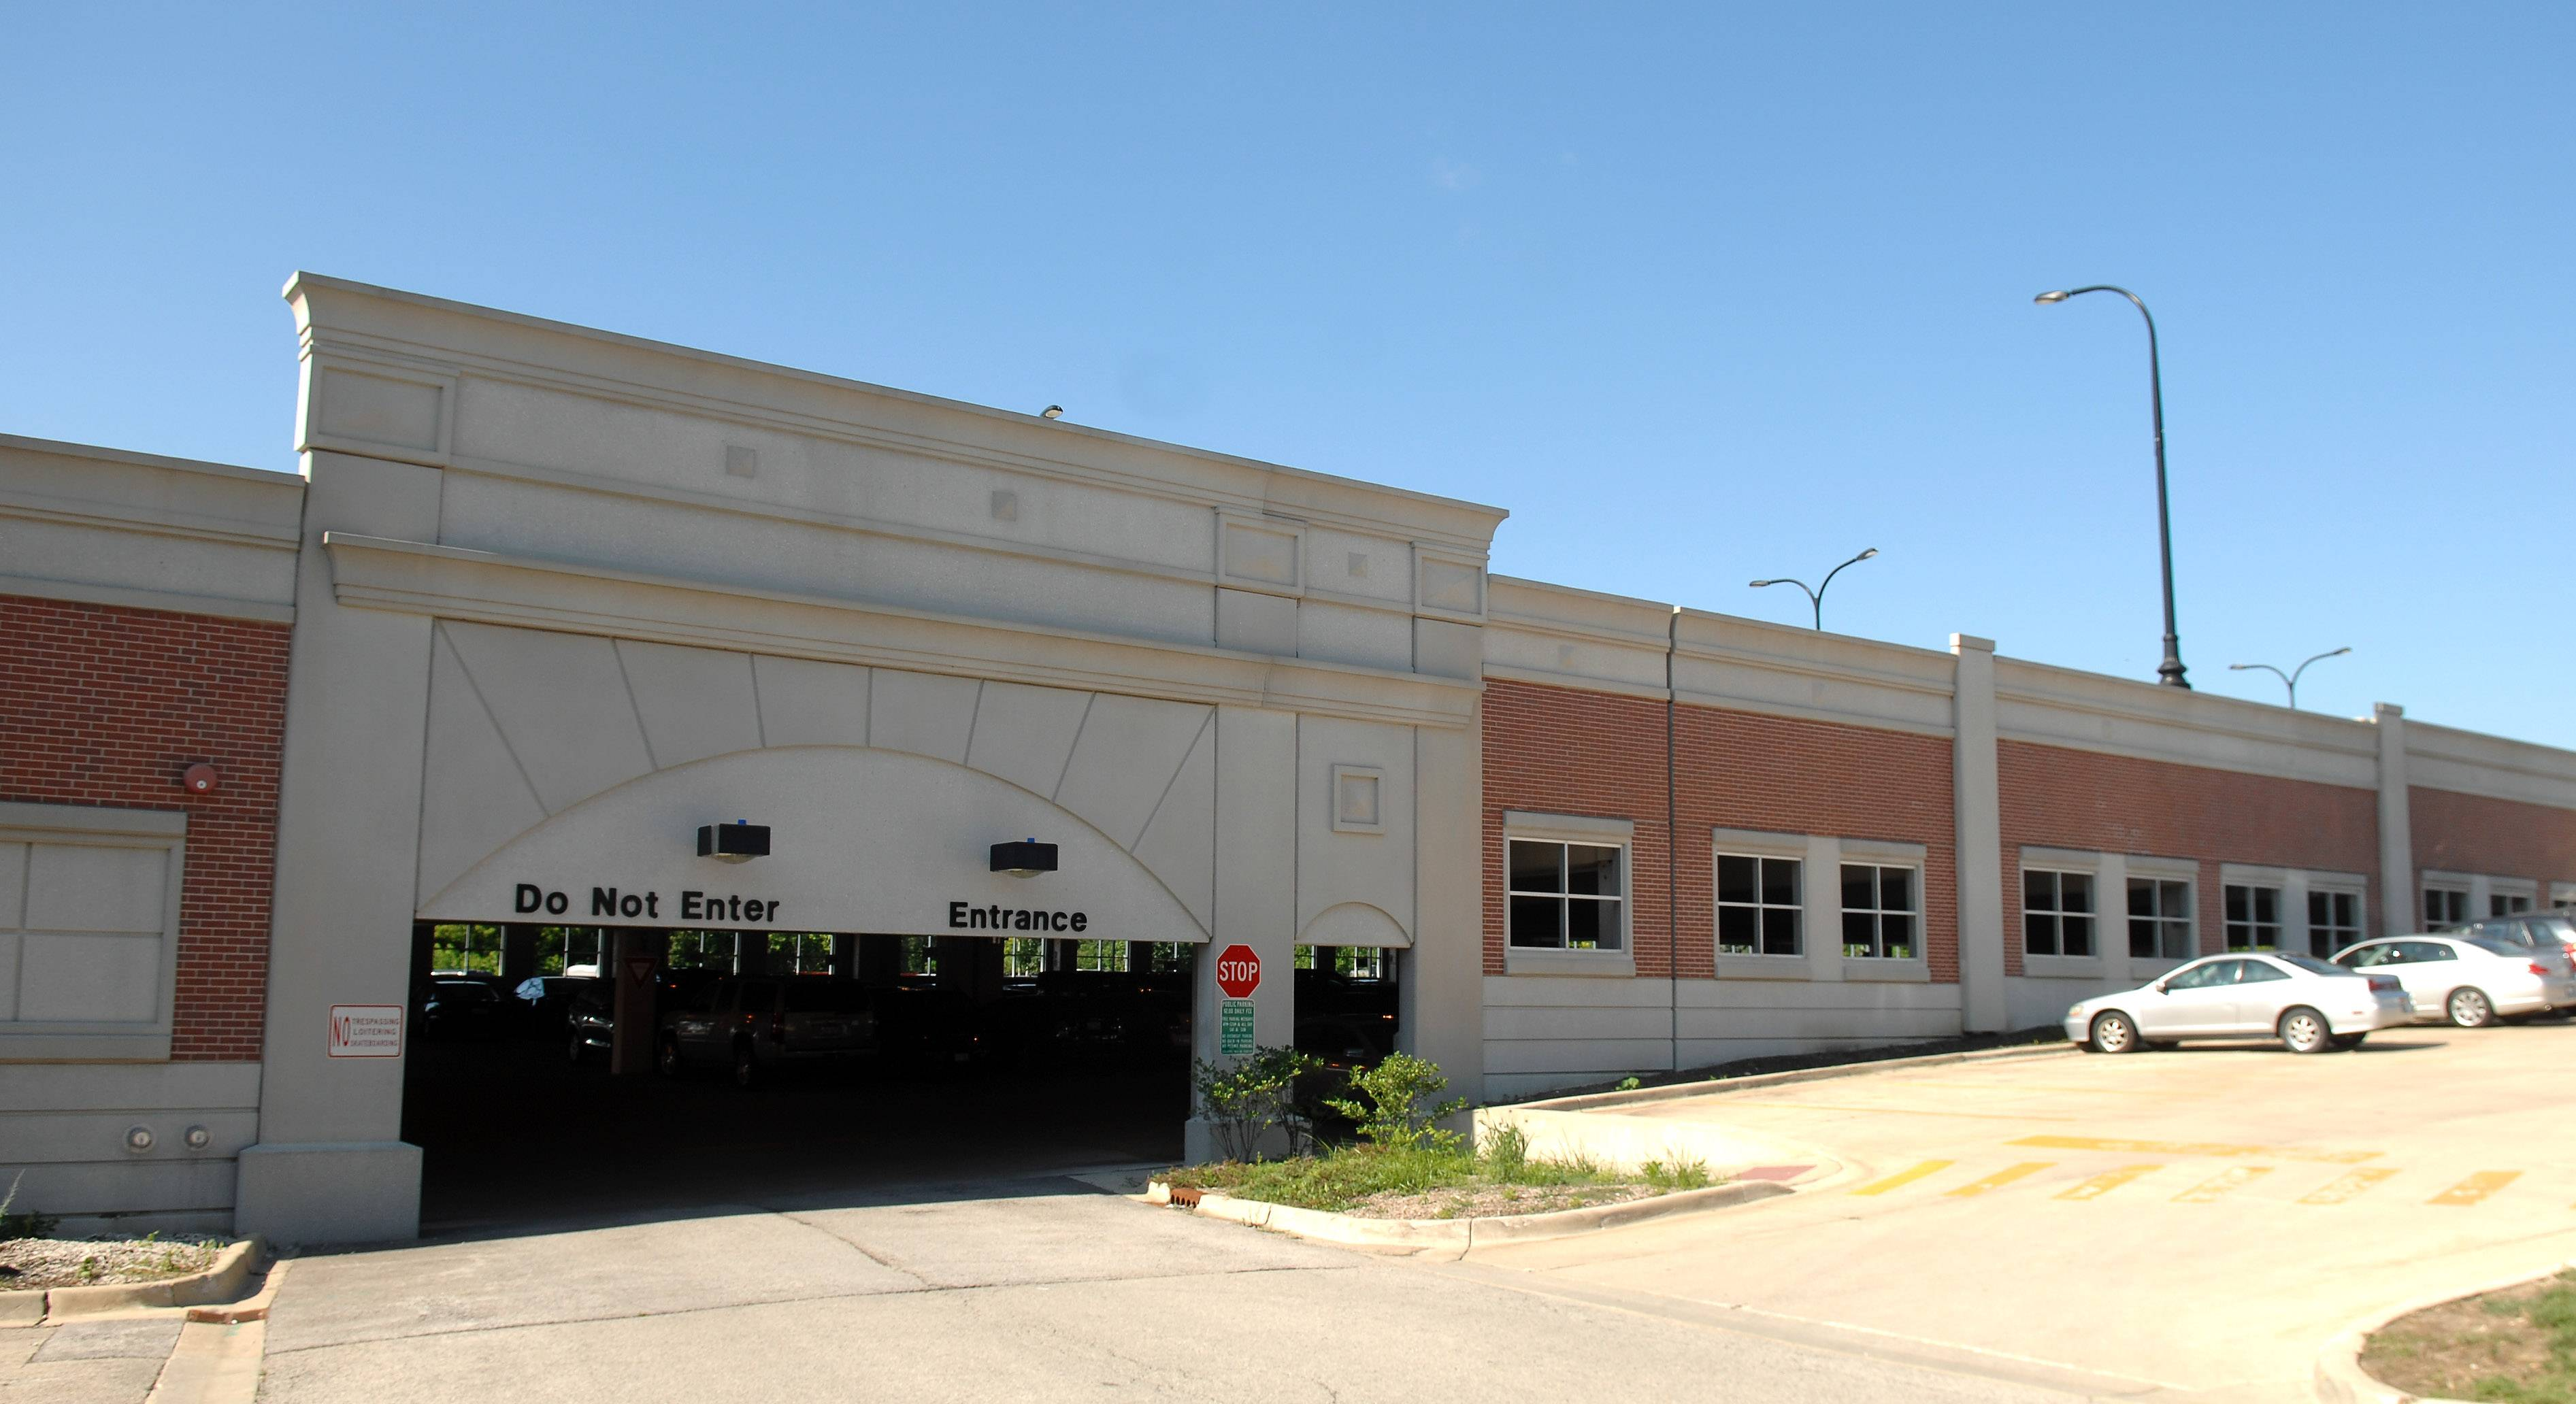 Geneva will get a third level on its parking garage, which it has wanted since it started planning the garage in 2001. The city council approved a construction contract Monday.